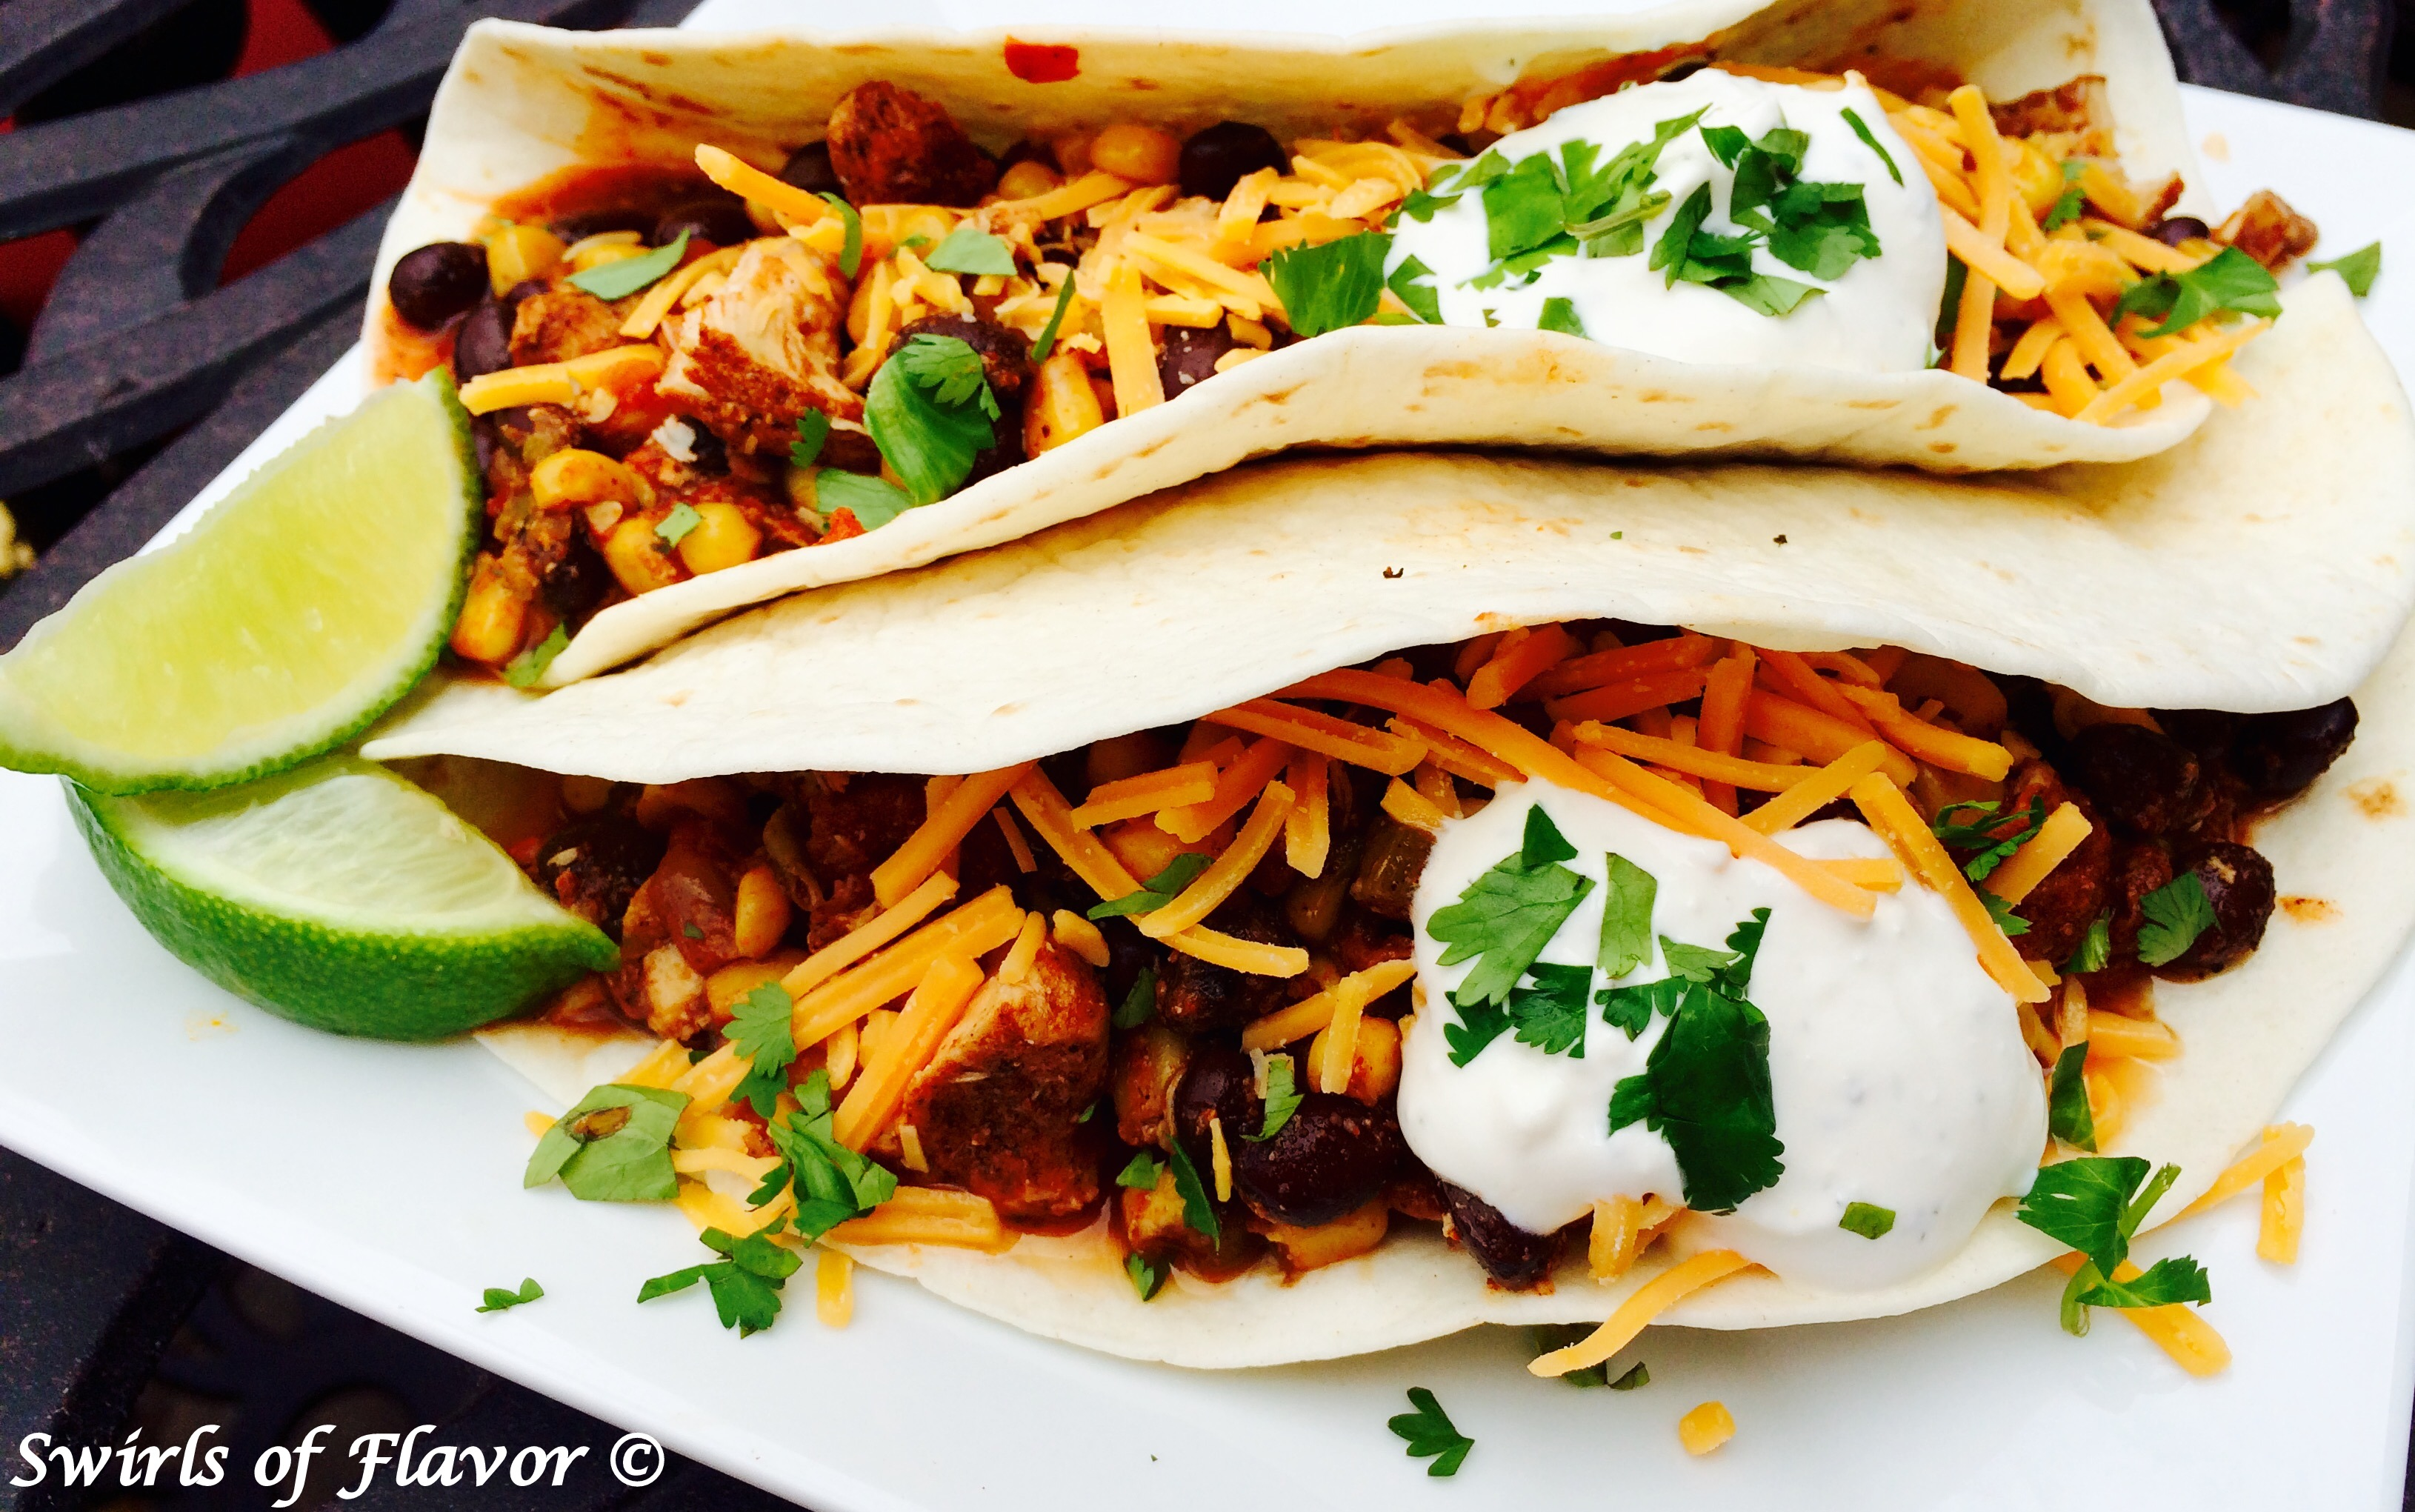 Chicken Chili in tortilla with cheese and sour cream